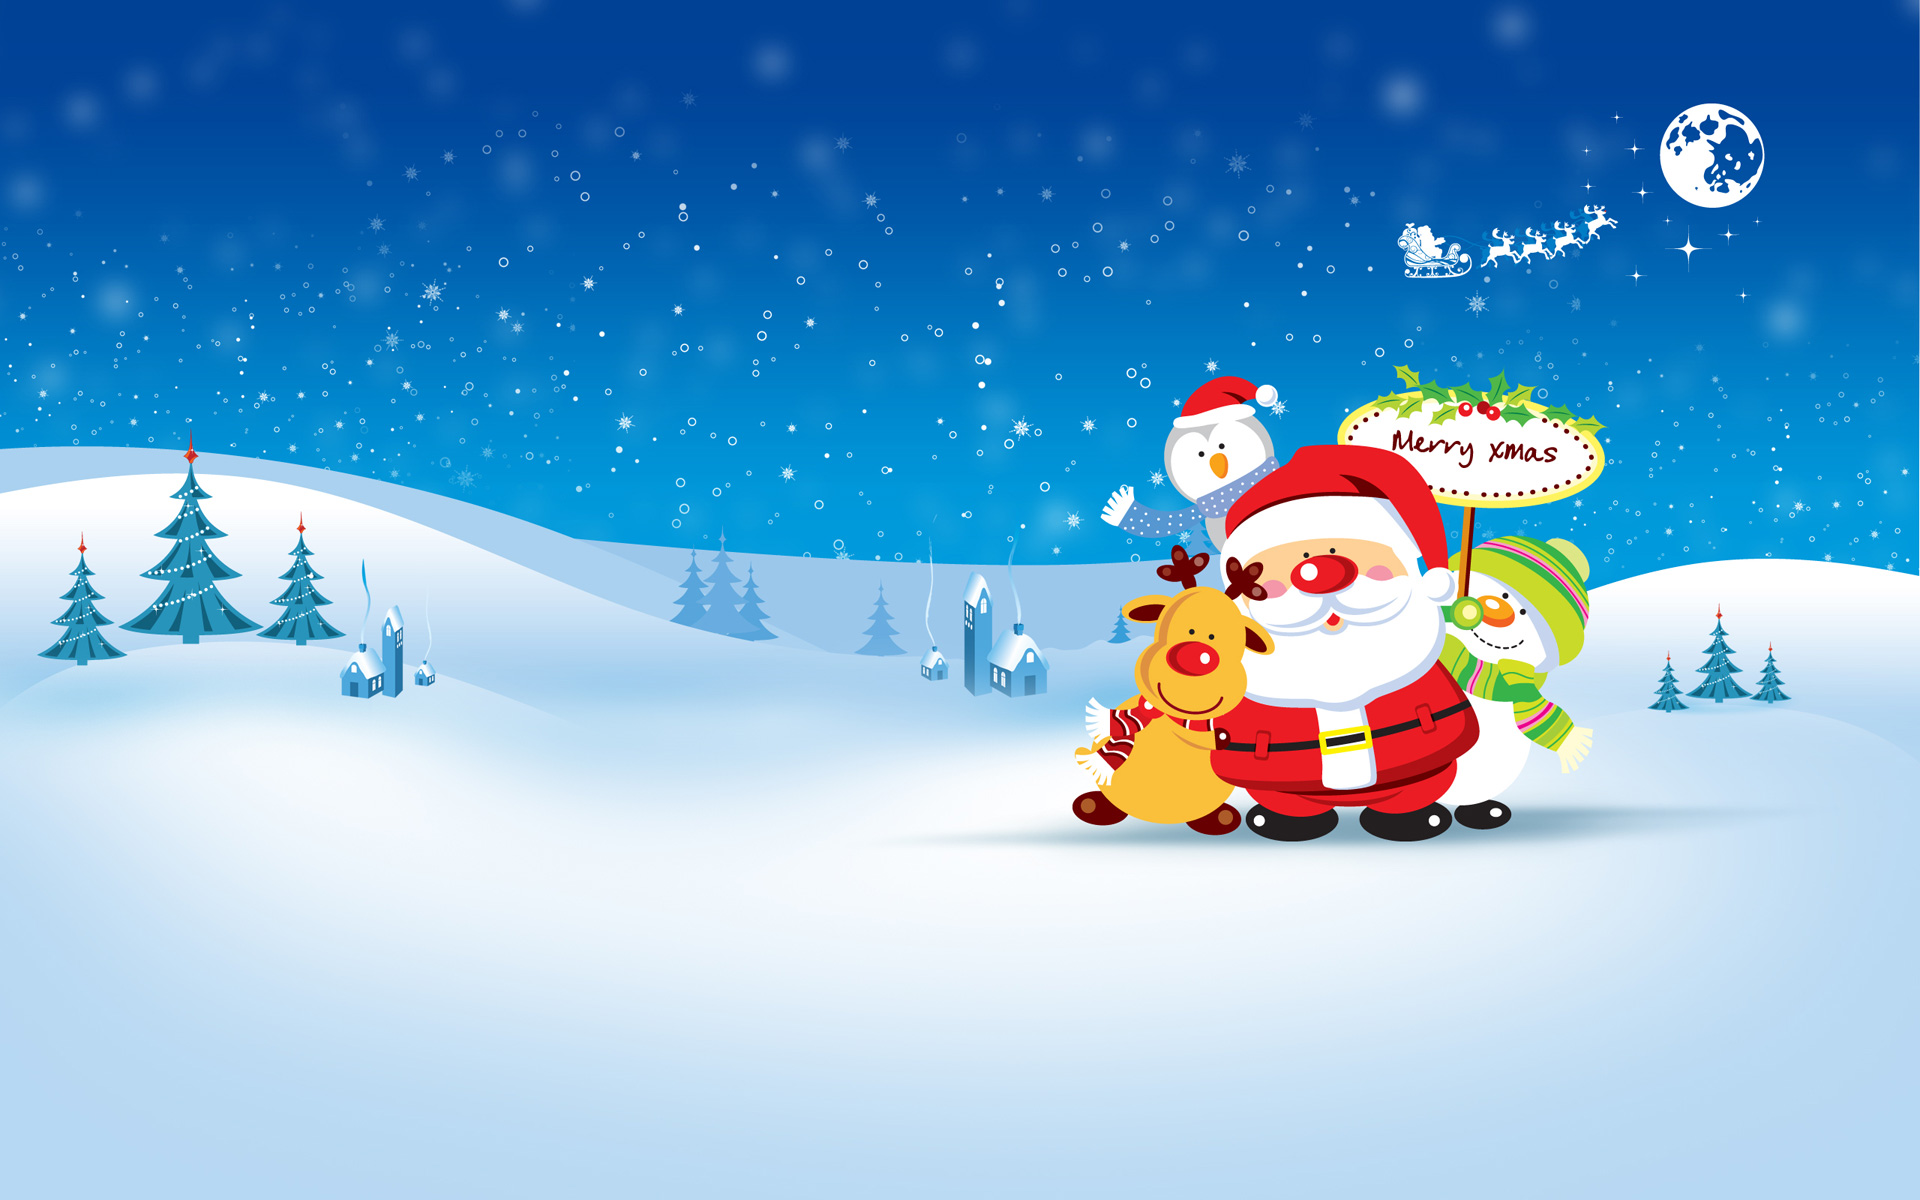 Winter Christmas Wallpapers